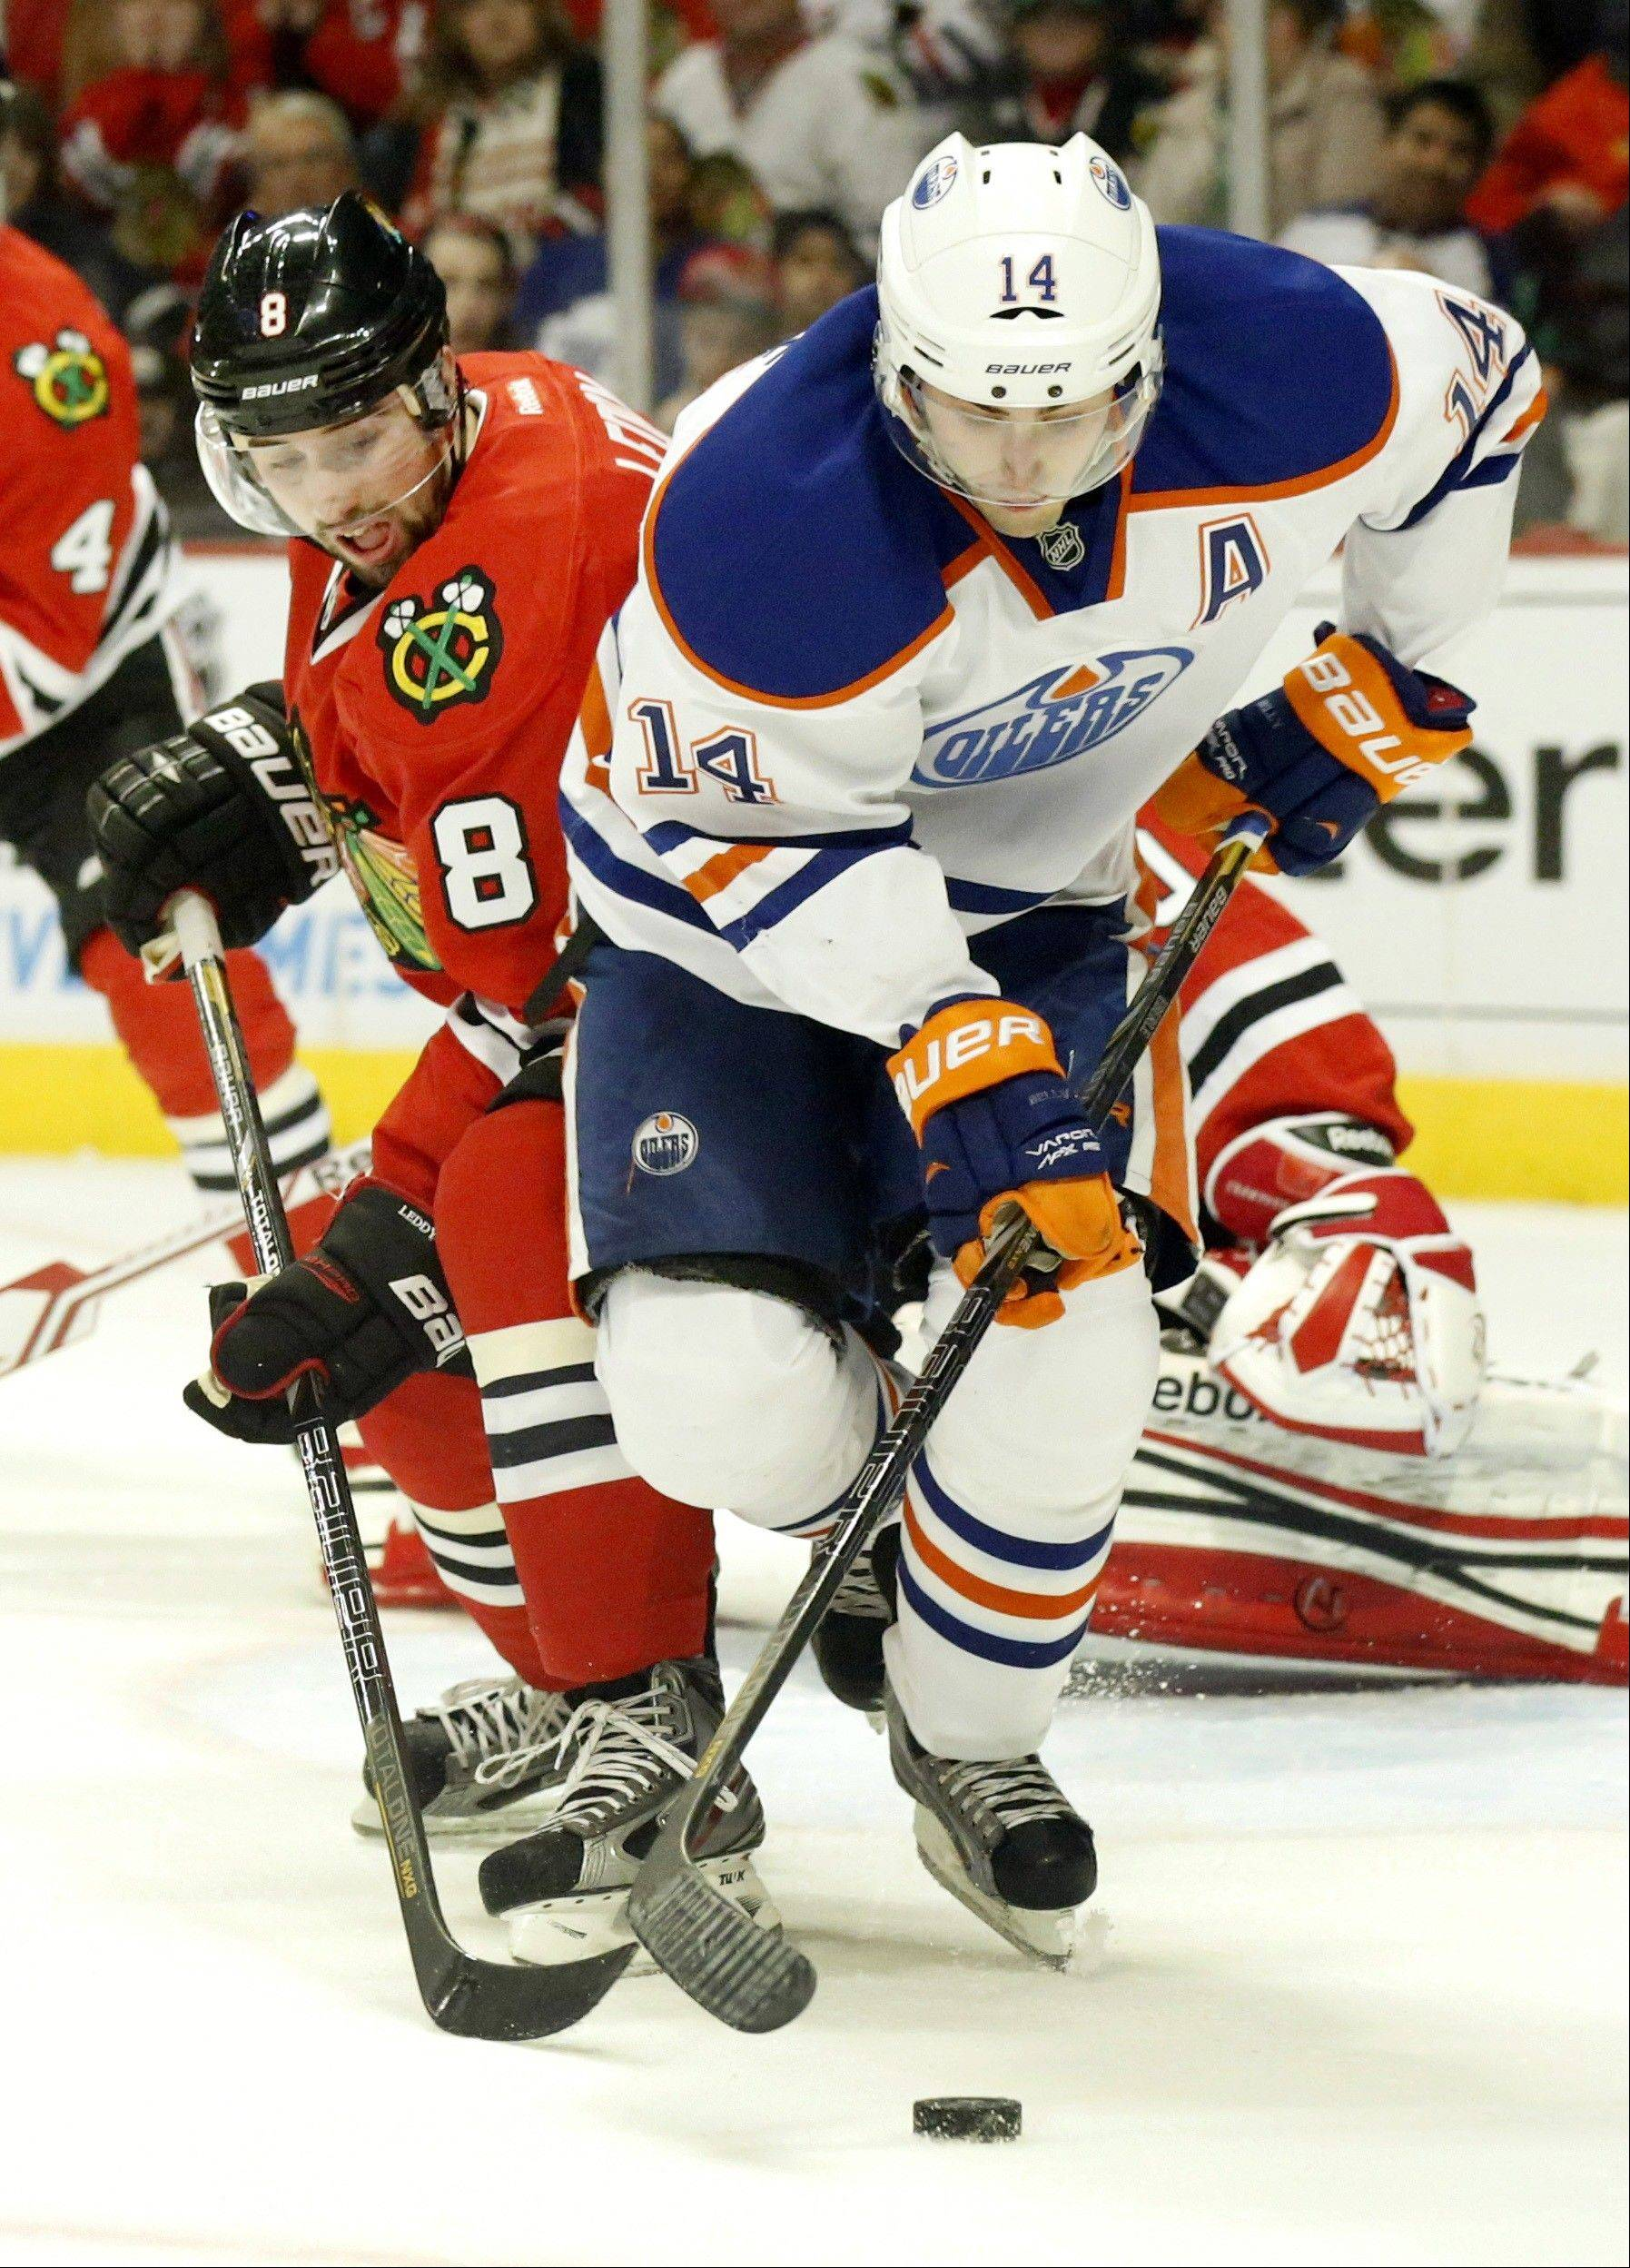 ASSOCIATED PRESS Chicago Blackhawks defenseman Nick Leddy (8) battles Edmonton Oilers center Jordan Eberle (14) for the puck during the first period.